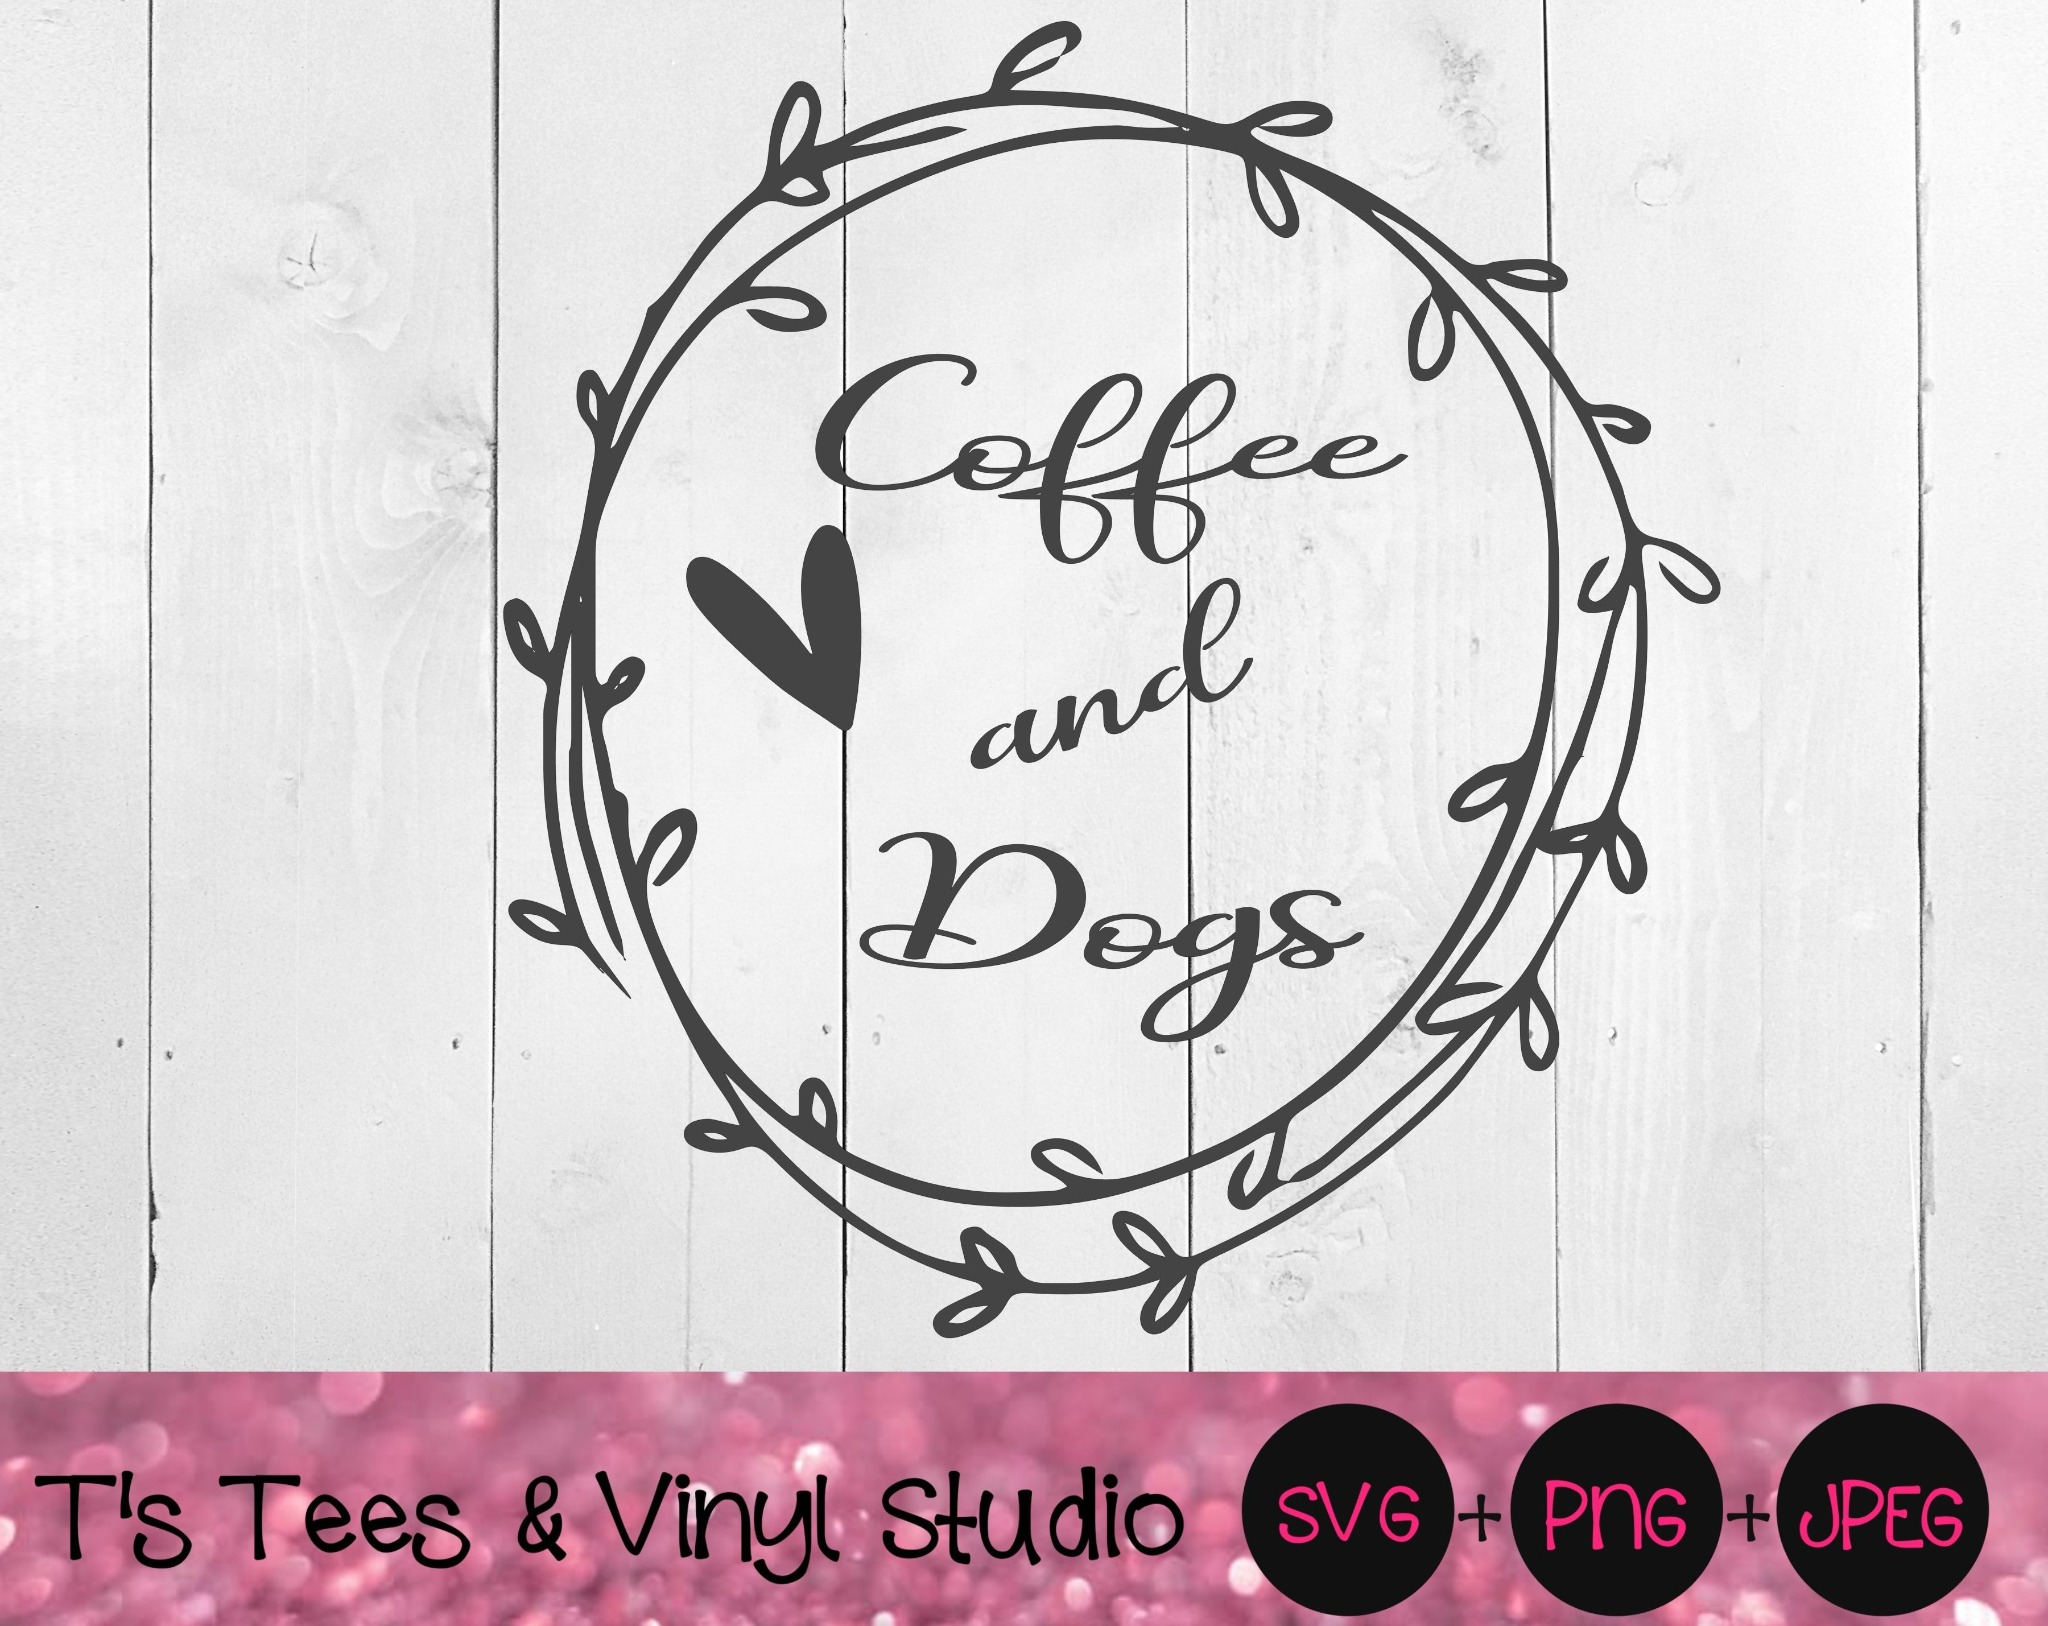 Coffee And Dogs SVG, Love Coffee And Dogs Svg, Coffee Svg, Dogs Svg, Coffee Png, Dogs Png, Coffee an